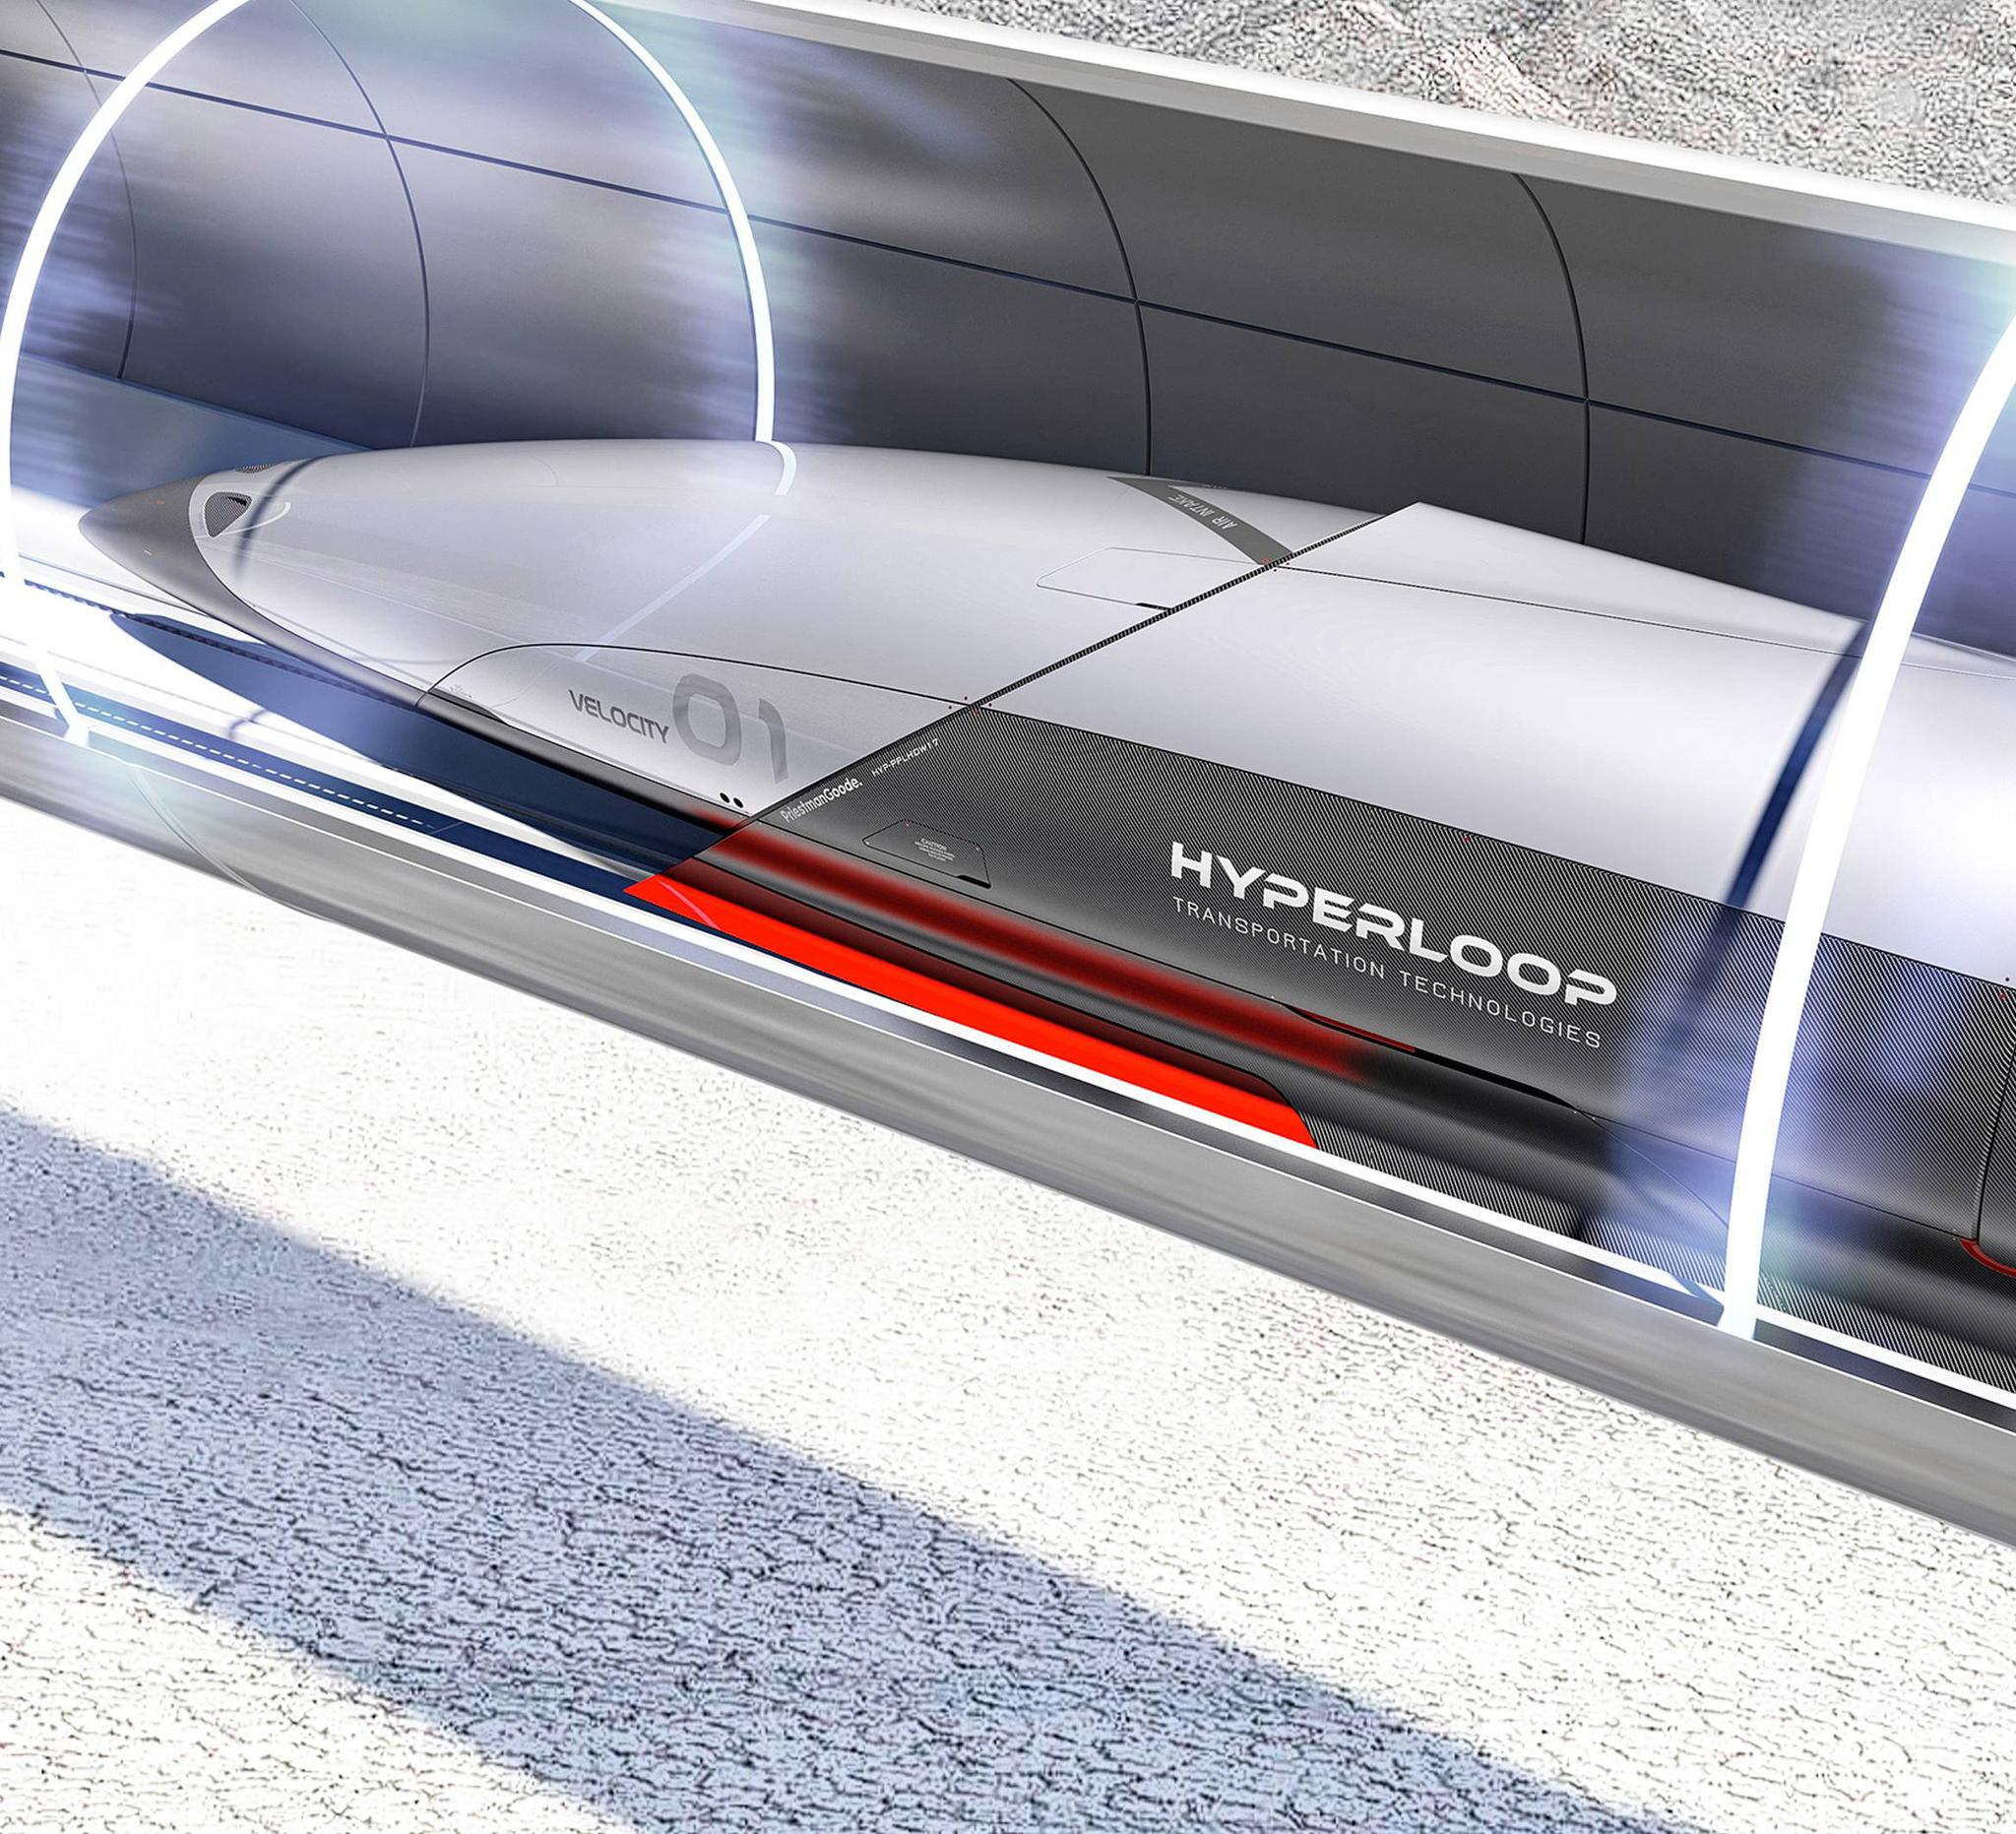 hyperloop transportation technologies announced it has signed agreements with the northeast ohio areawide coordinating agency and the illinois department of